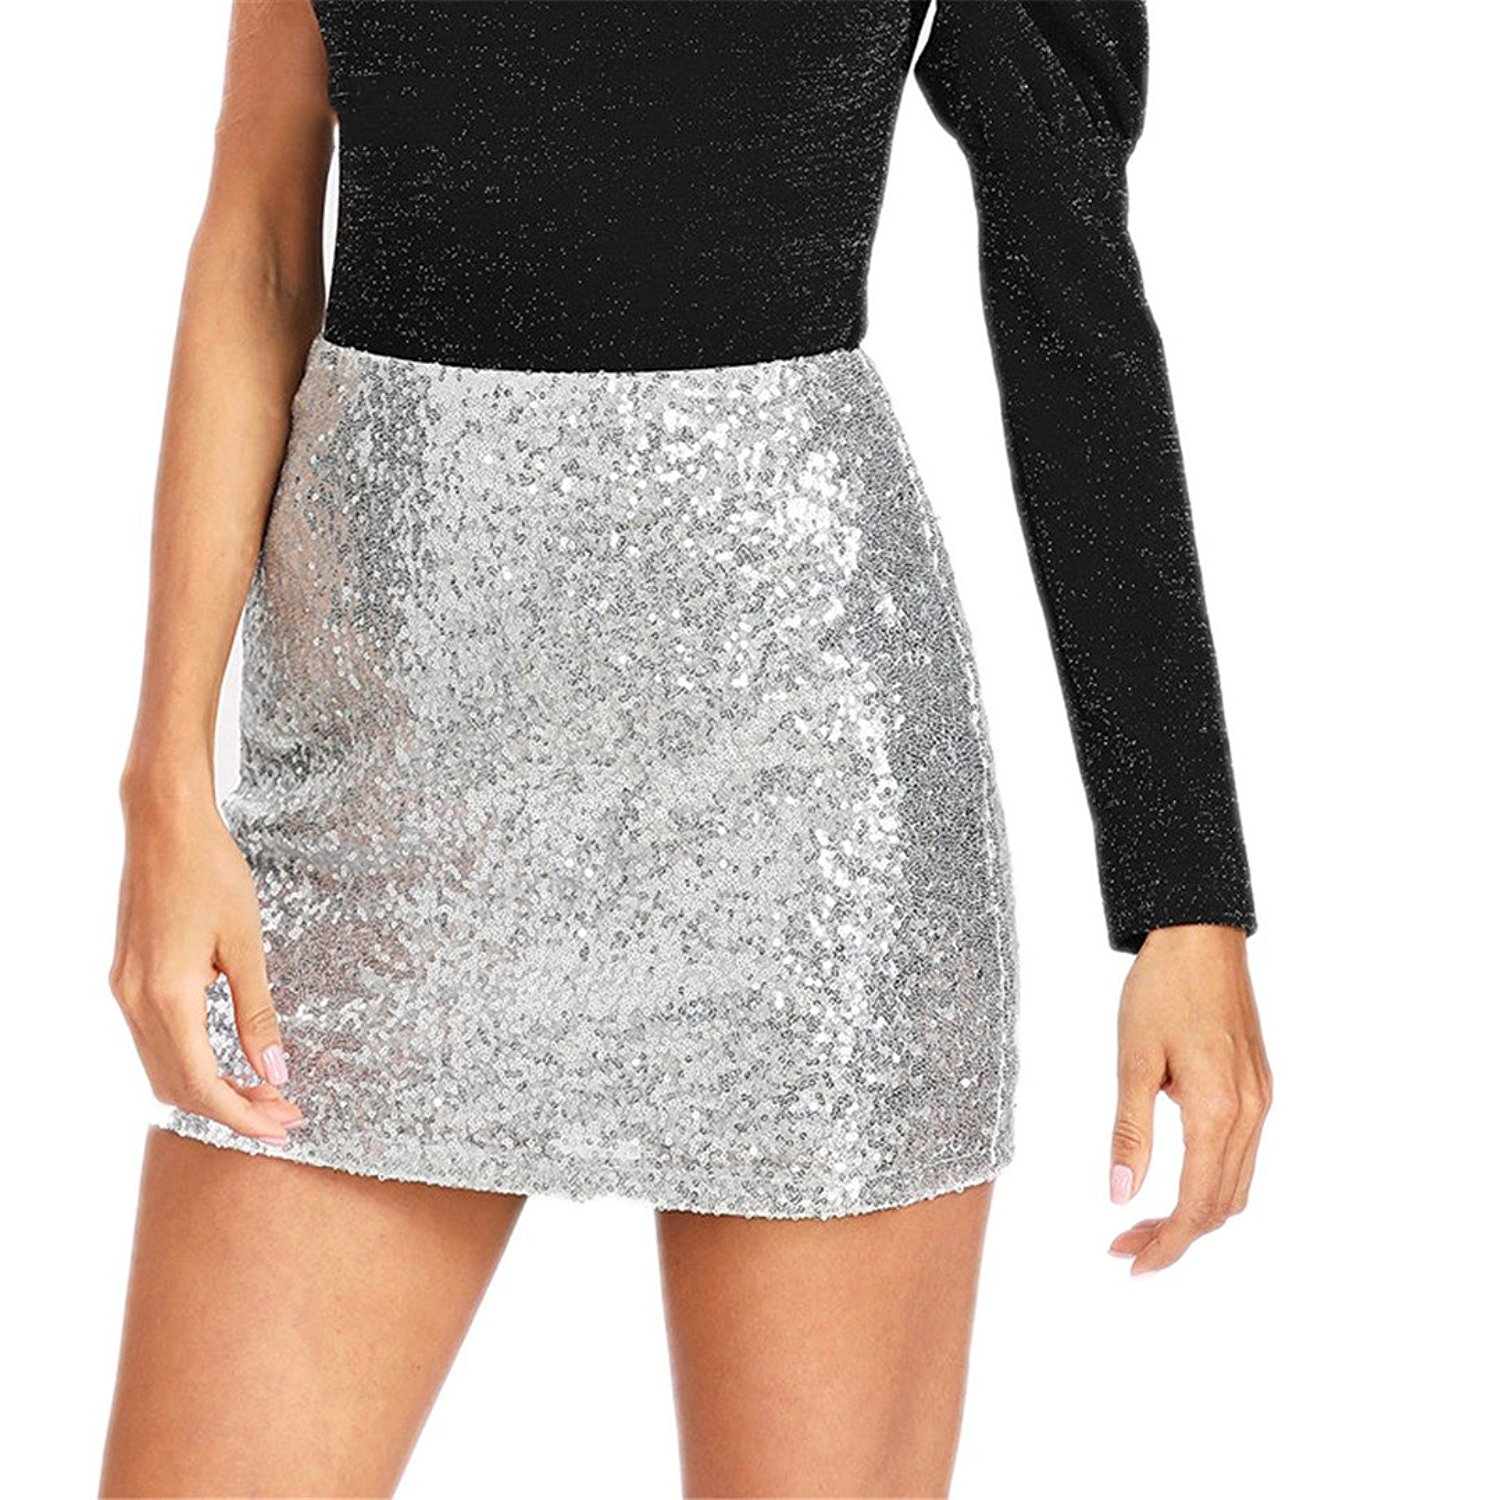 bc5f519f Get Quotations · Women's Elegant Party Sexy Club Skirt New Metal Sequin  Skirt Silver Pencil Jacket Skirt